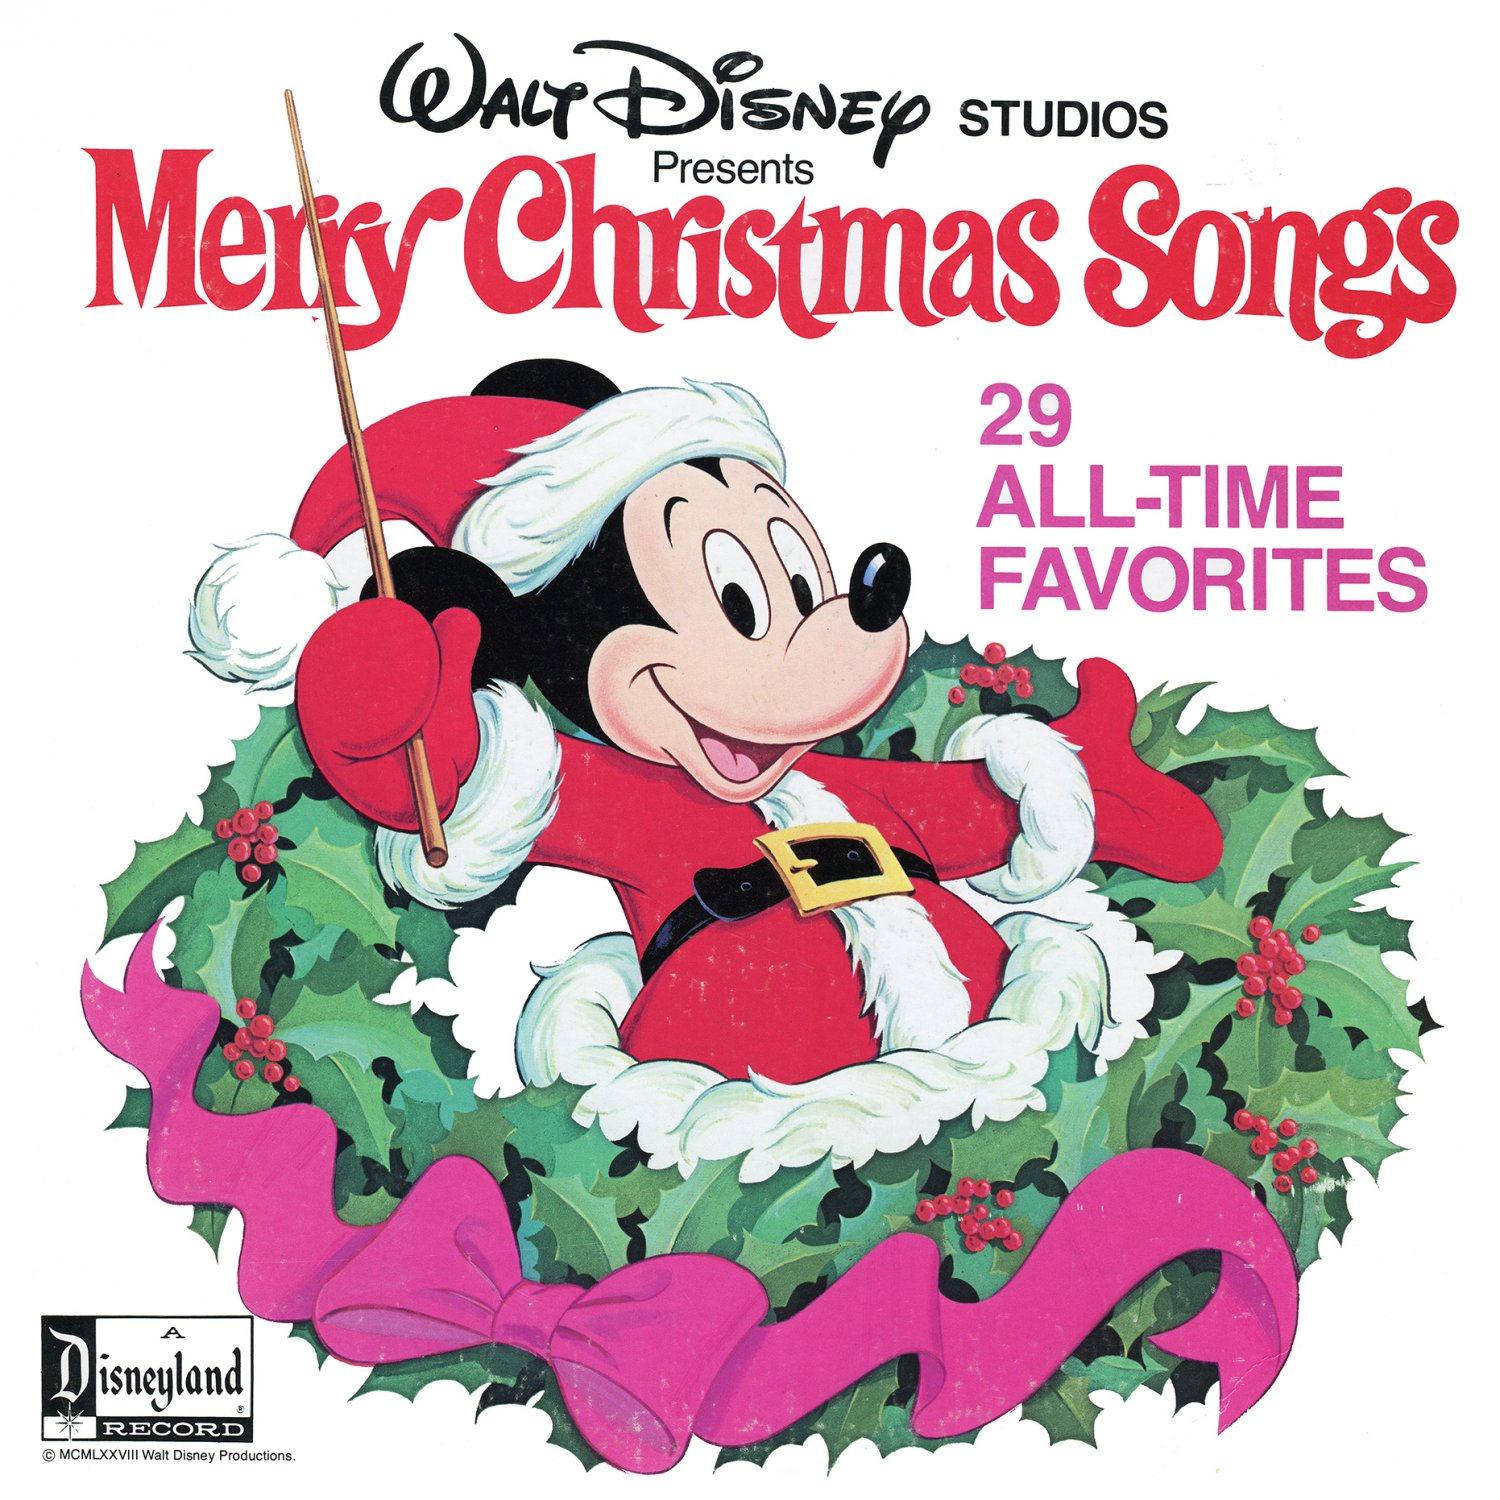 Merry Christmas Songs - Disney Holiday Music Collection, 2 Disc Set LP/CD